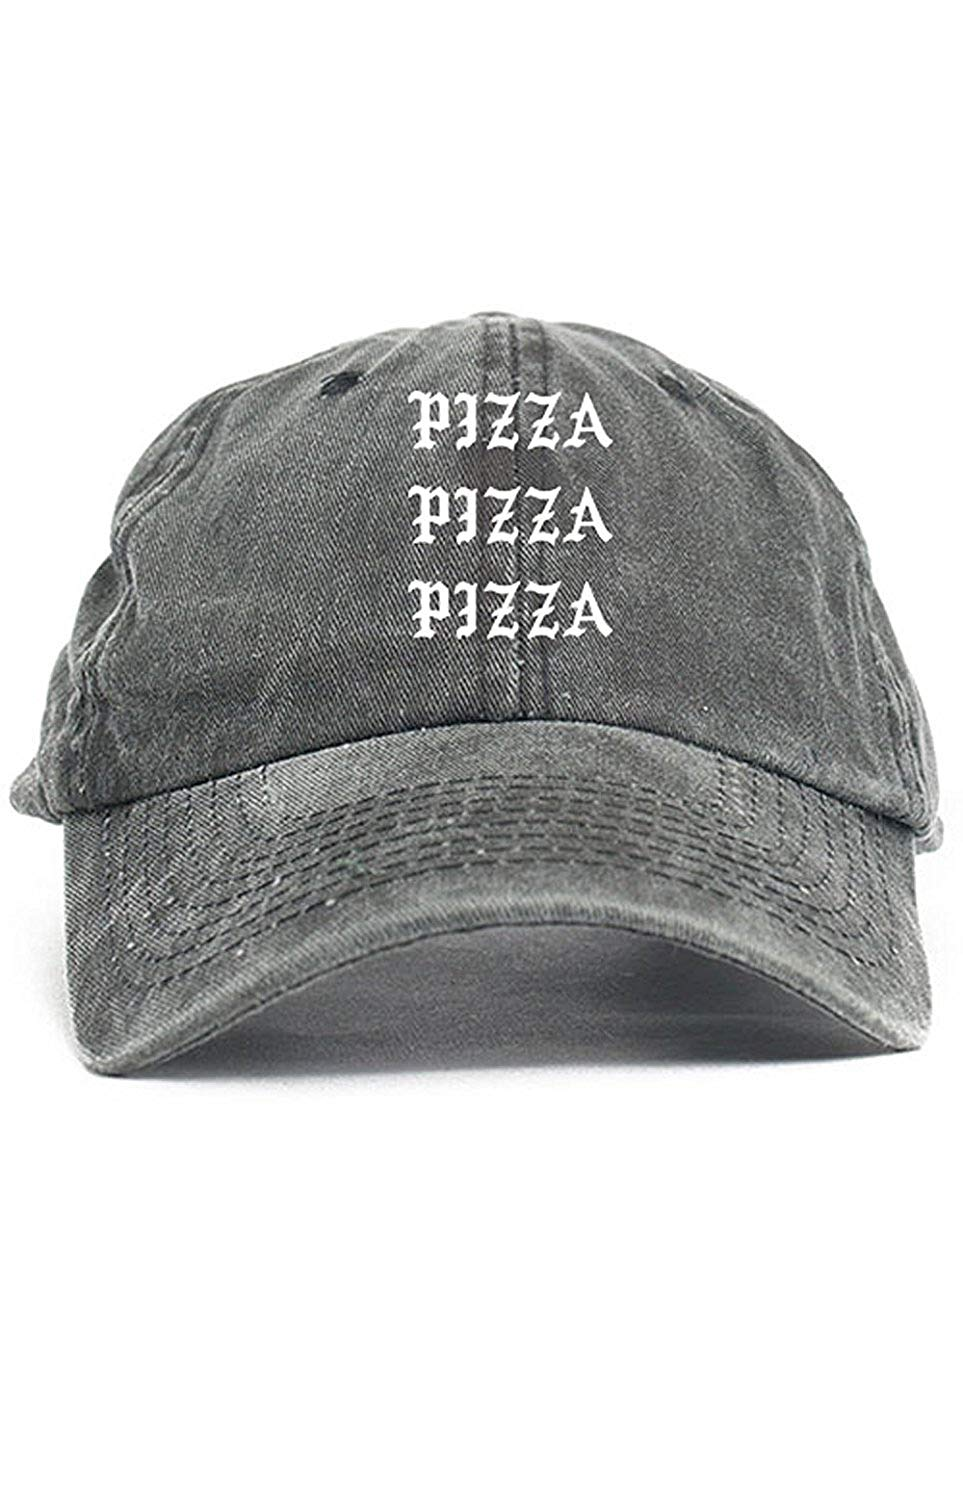 12a029edac1ed Get Quotations · Pizza Pizza Pizza Unstructured Dad Hat New - Black Denim